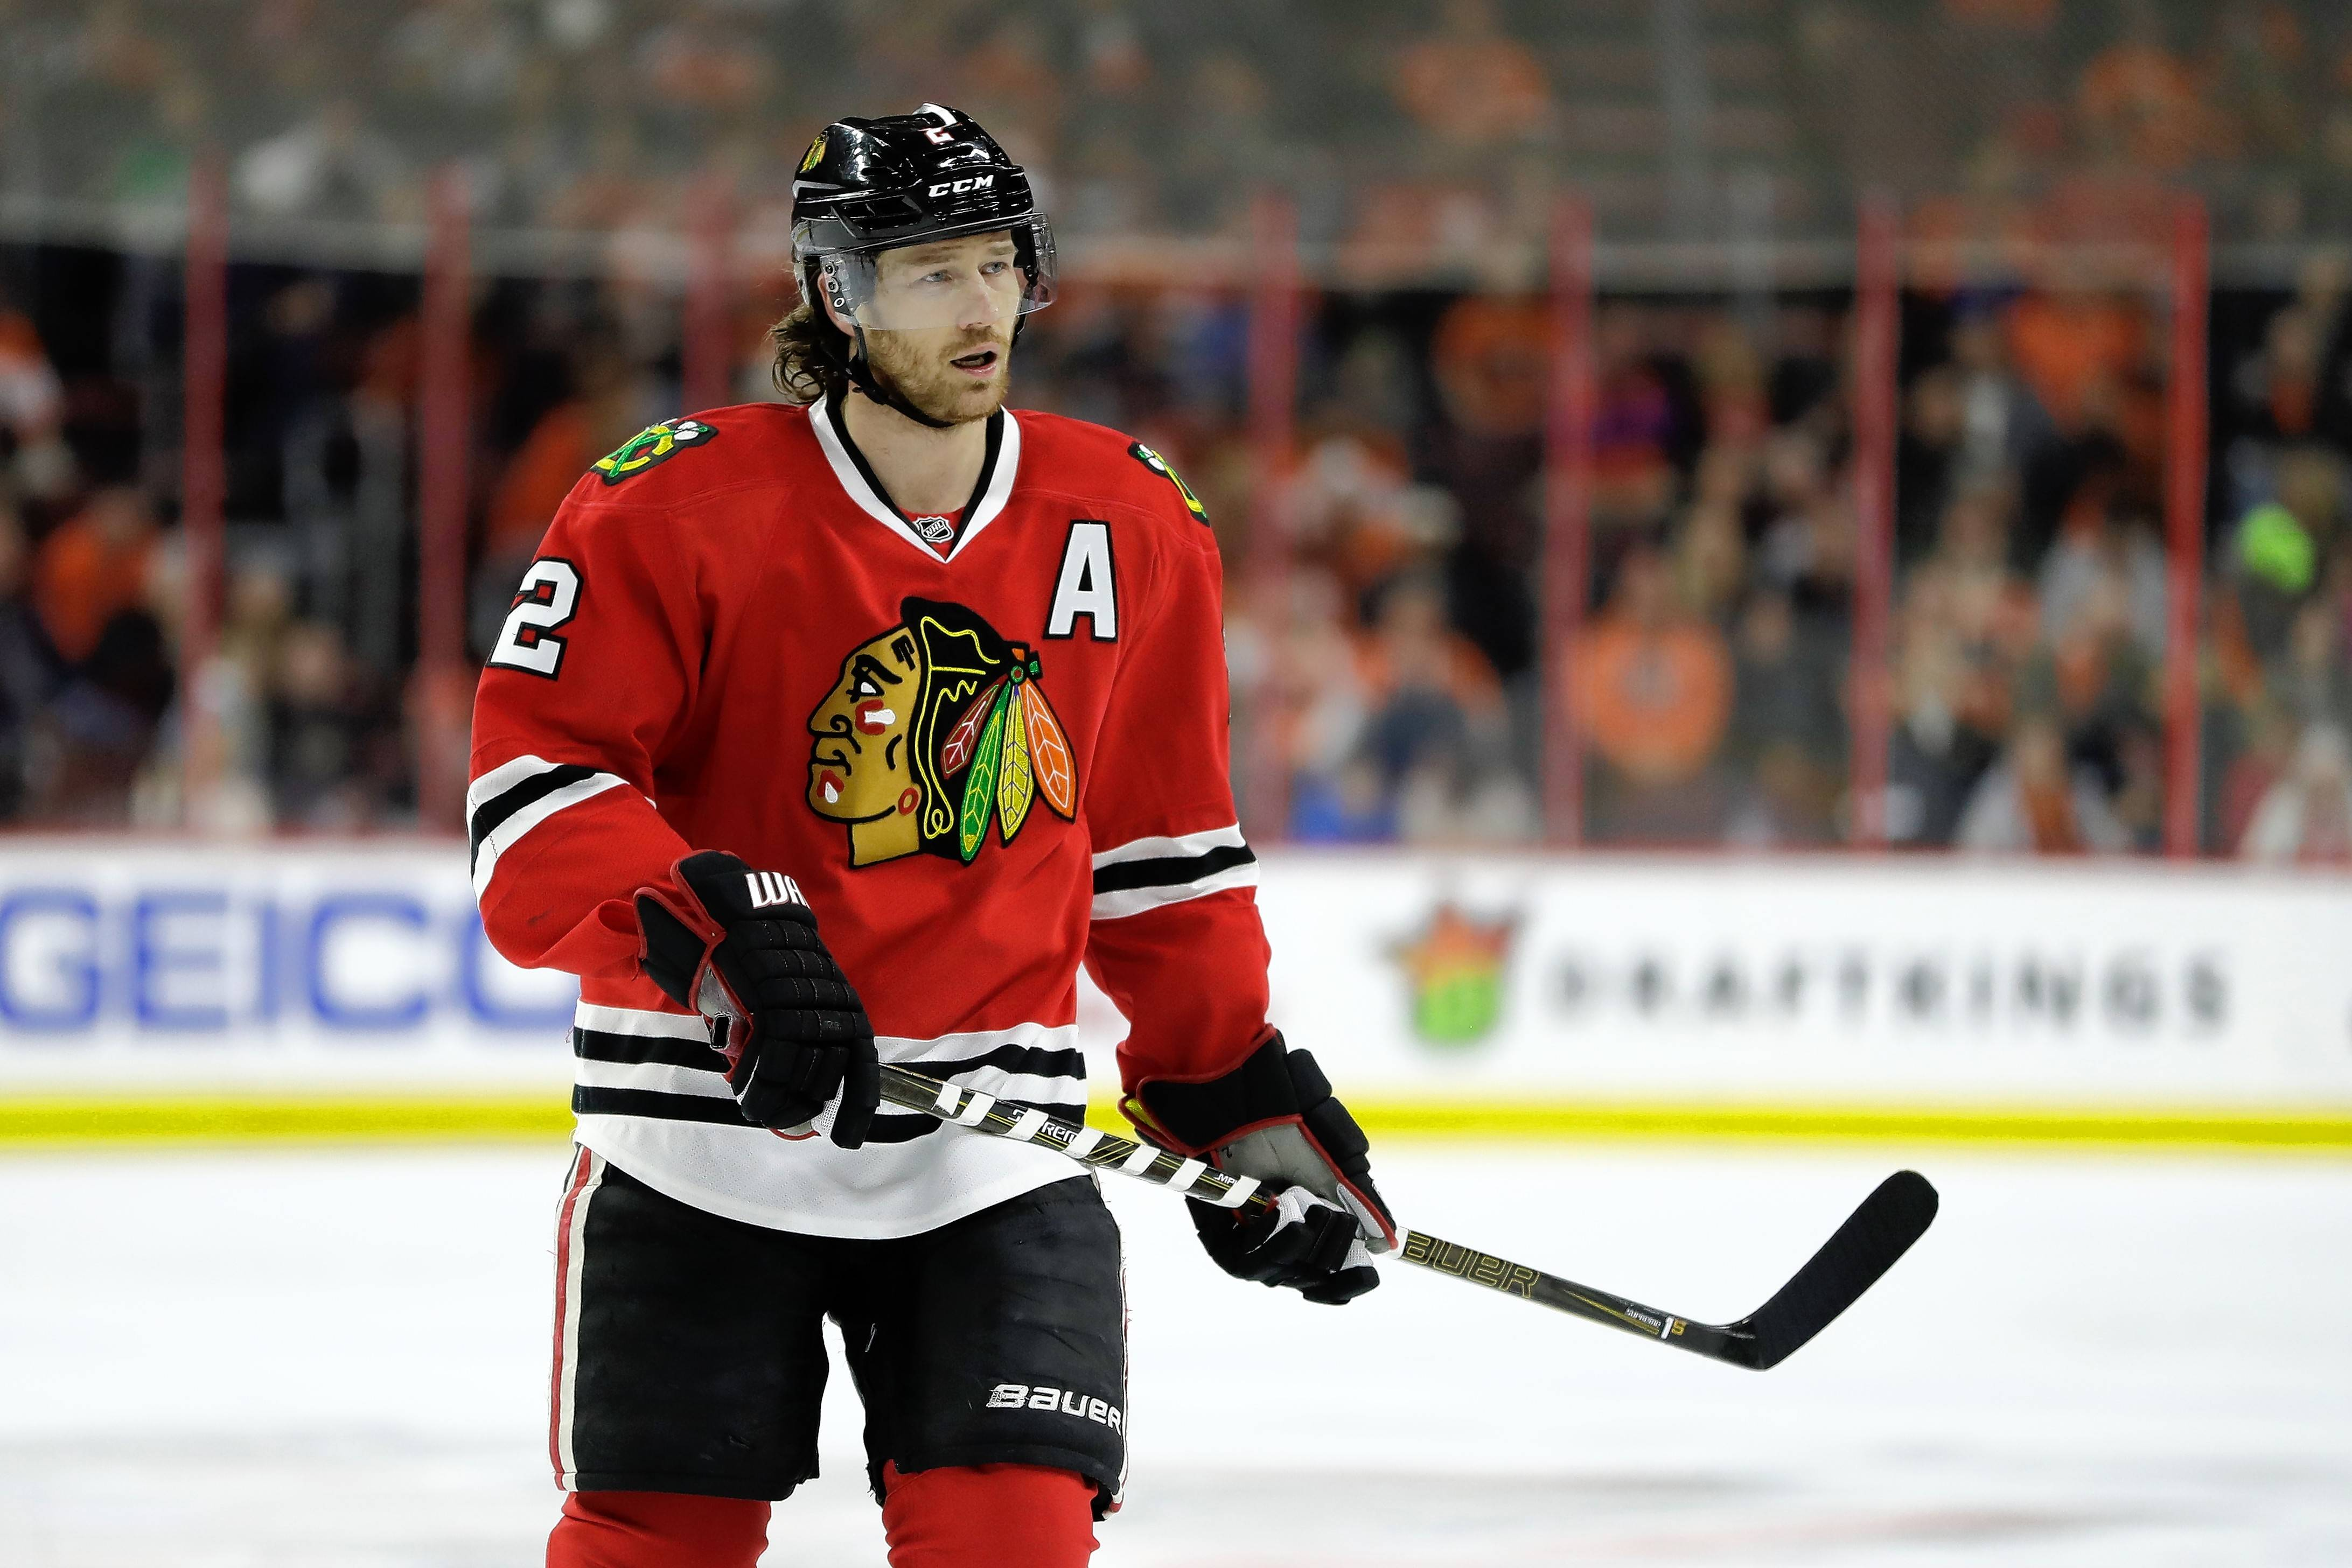 Chicago Blackhawks defenseman Duncan Keith has yet to score a goal this season. It's only the second time in his career that Keith has gone this long without scoring at least once.